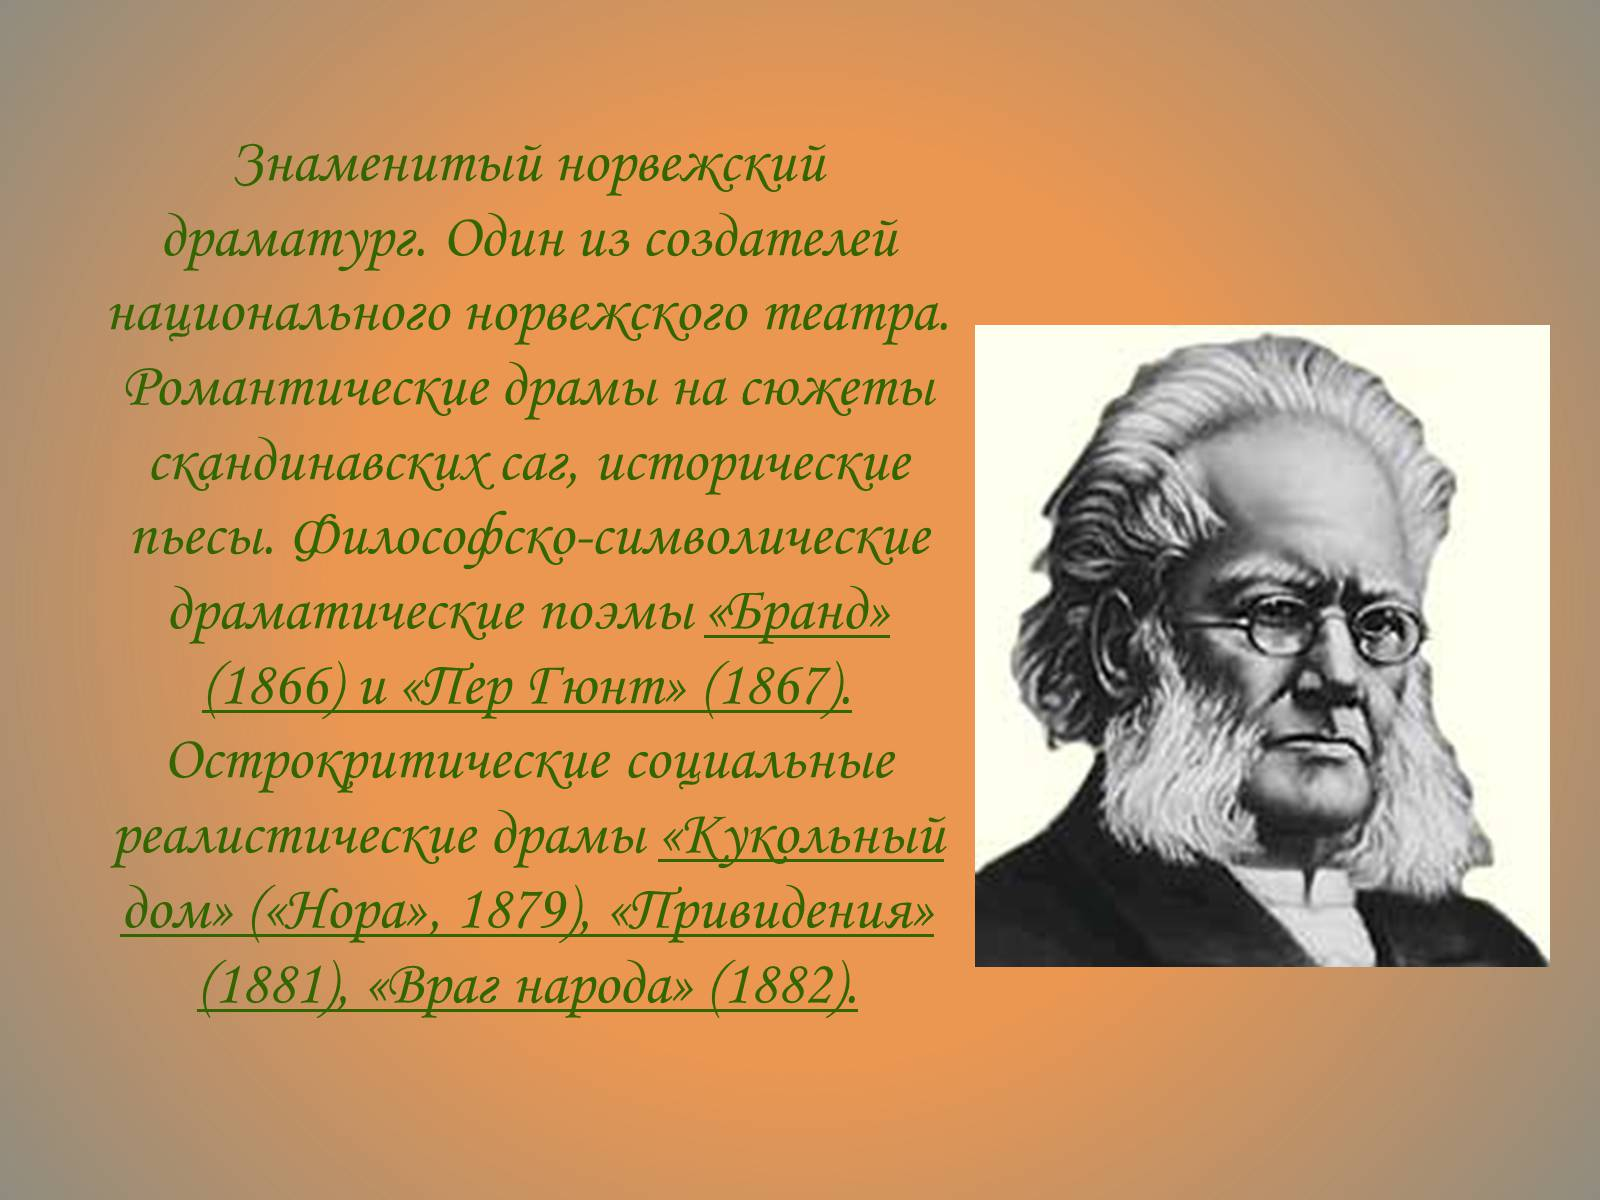 dramatist henrik ibsen essay The norwegian playwright, henrik ibsen a was an advocator of individualism and was against the social norms which shape the lives of human beings his characters live themselves out in the spirit of reckless and vehement self-assertion - superman and superwomen.